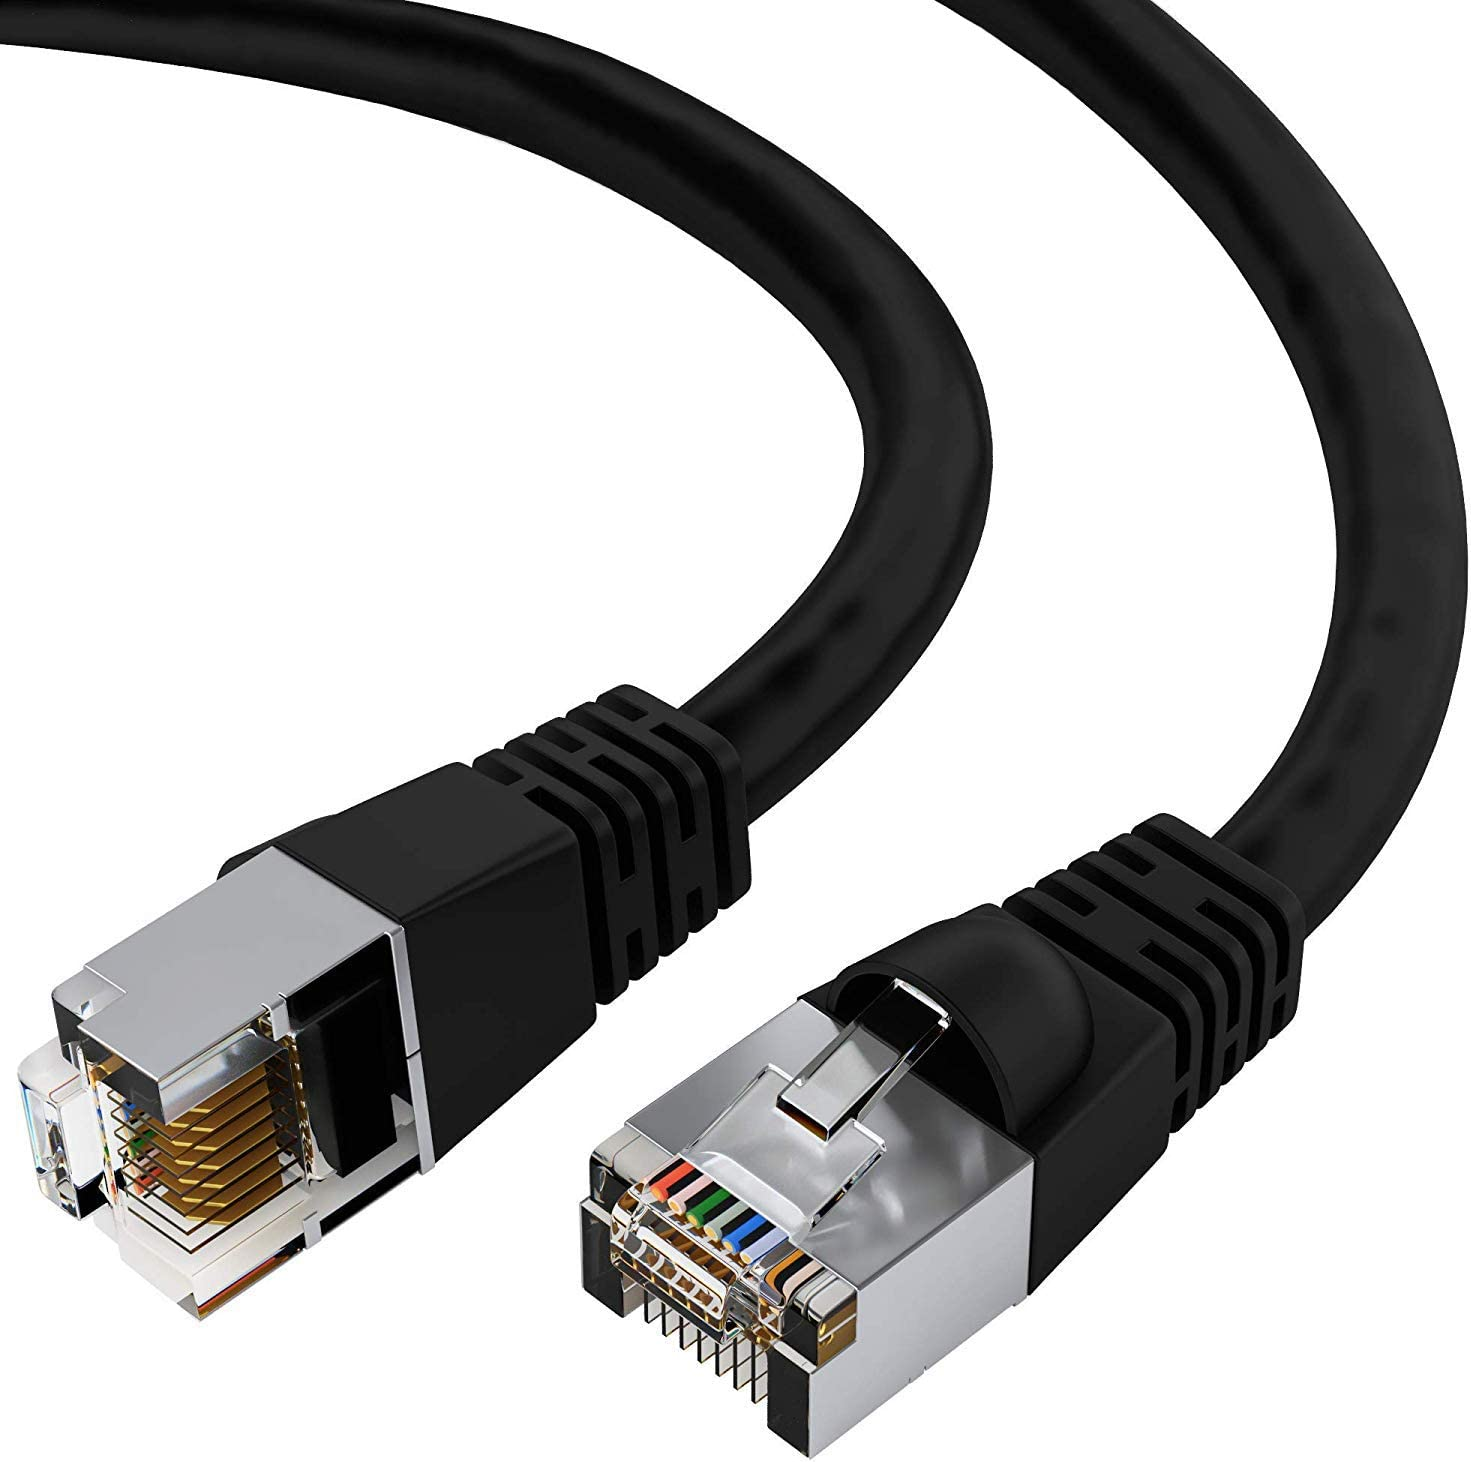 RJ45 10Gbps High Speed LAN Internet Cord GOWOS 20-Pack Available in 28 Lengths and 10 Colors FTP Computer Network Cable with Snagless Connector 5 Feet - Gray Cat5e Shielded Ethernet Cable